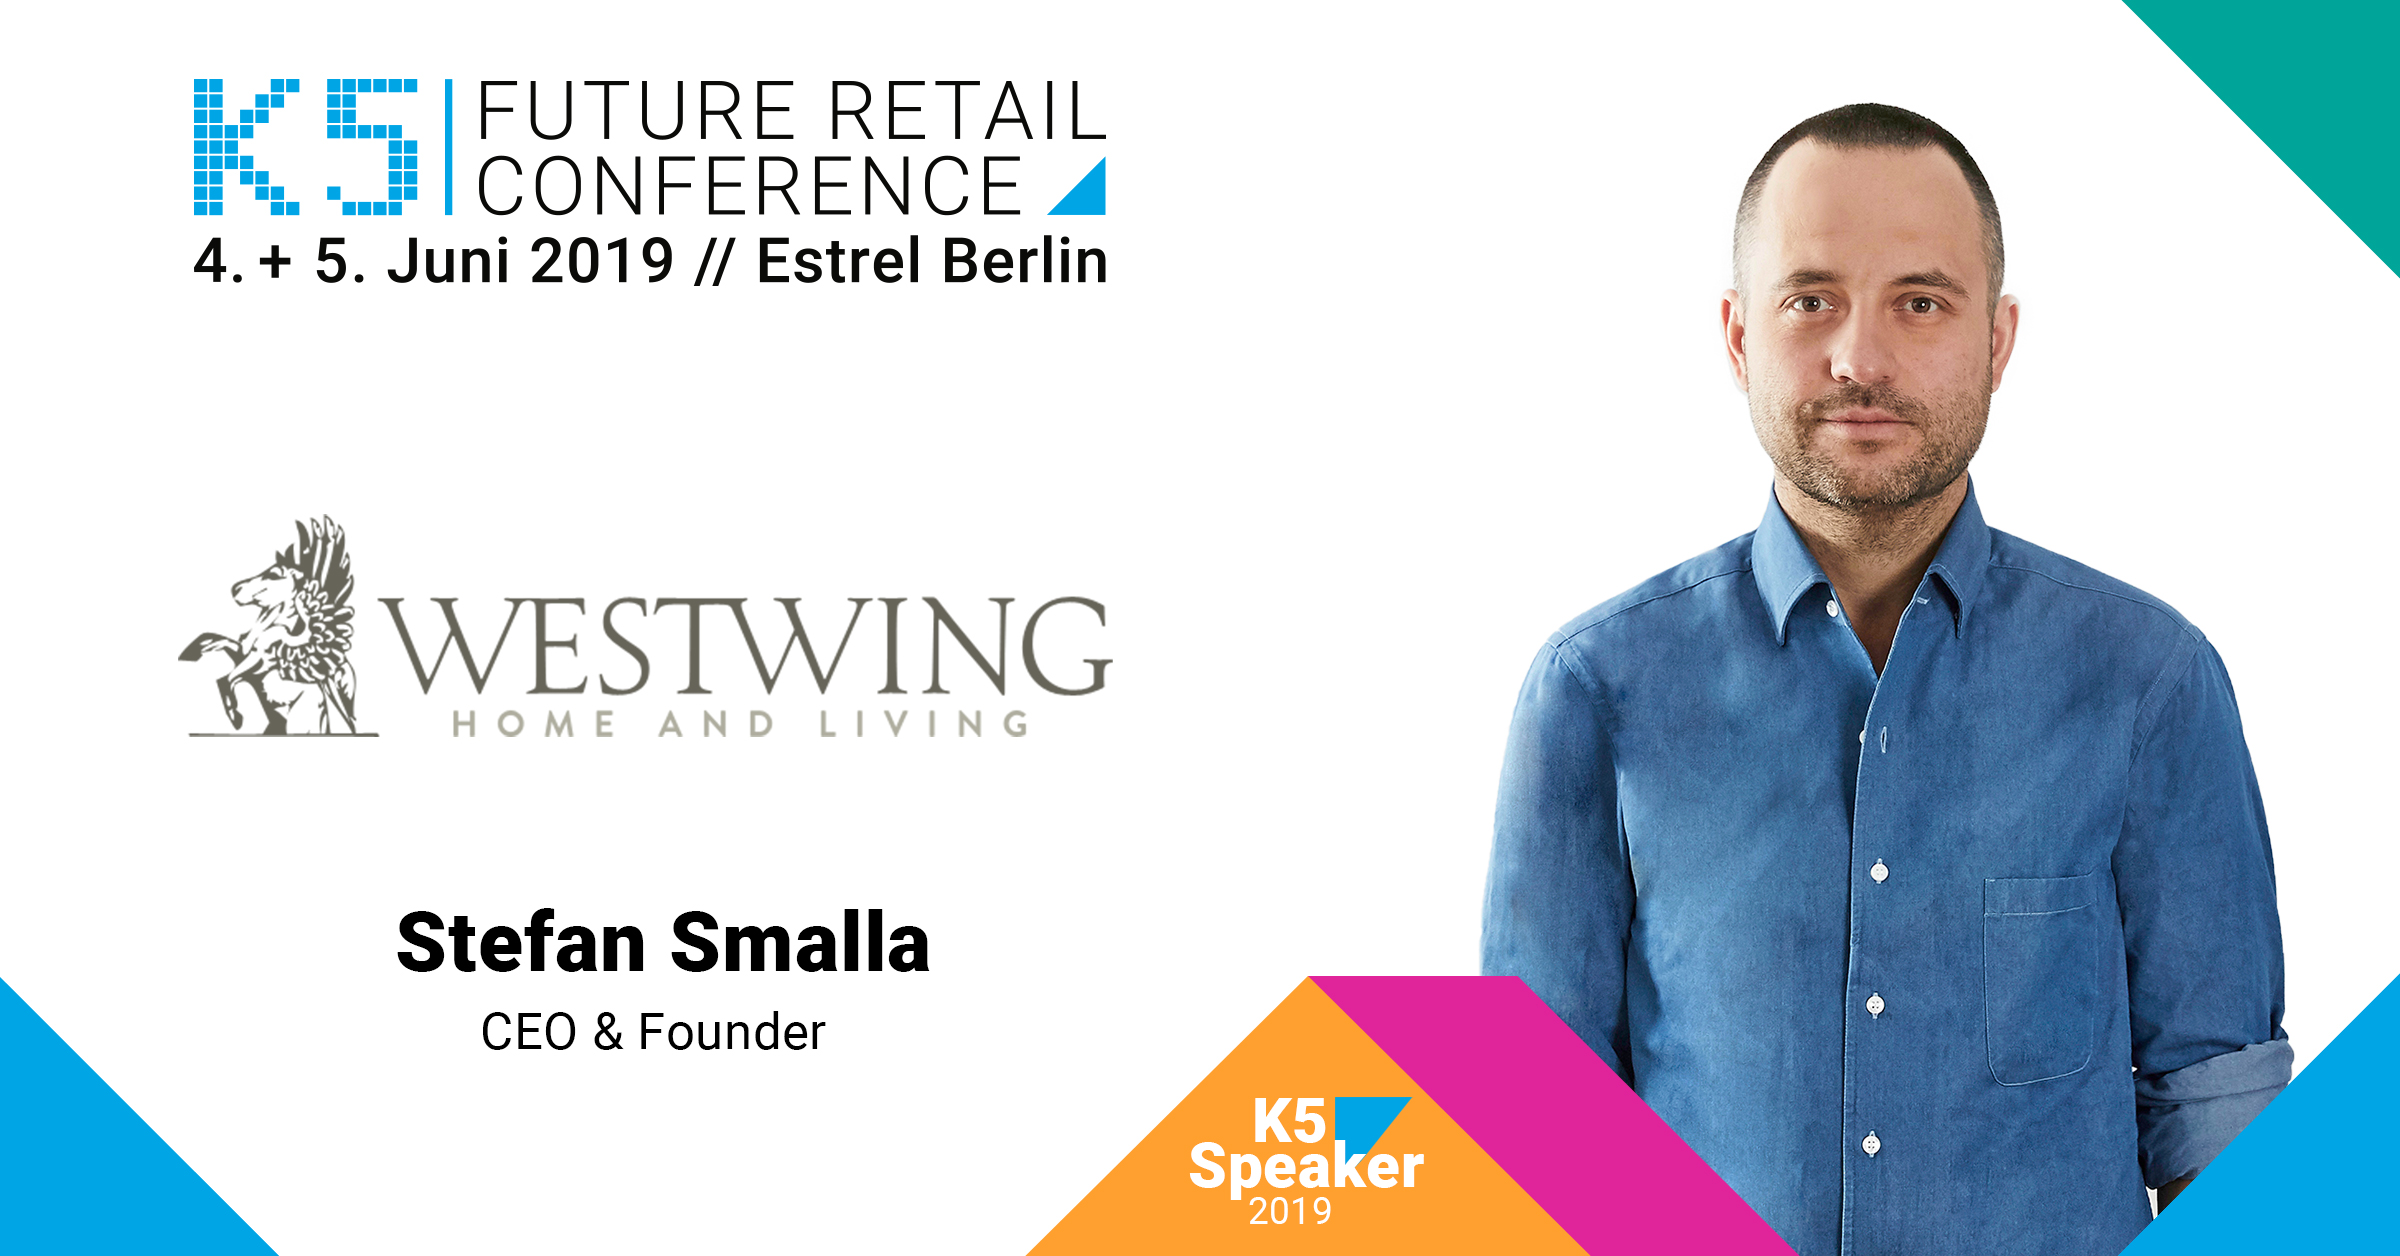 K5 Speaker FUTURE RETAIL CONFERENCE 2019, Stefan Smalla, CEO & Founder Westwing